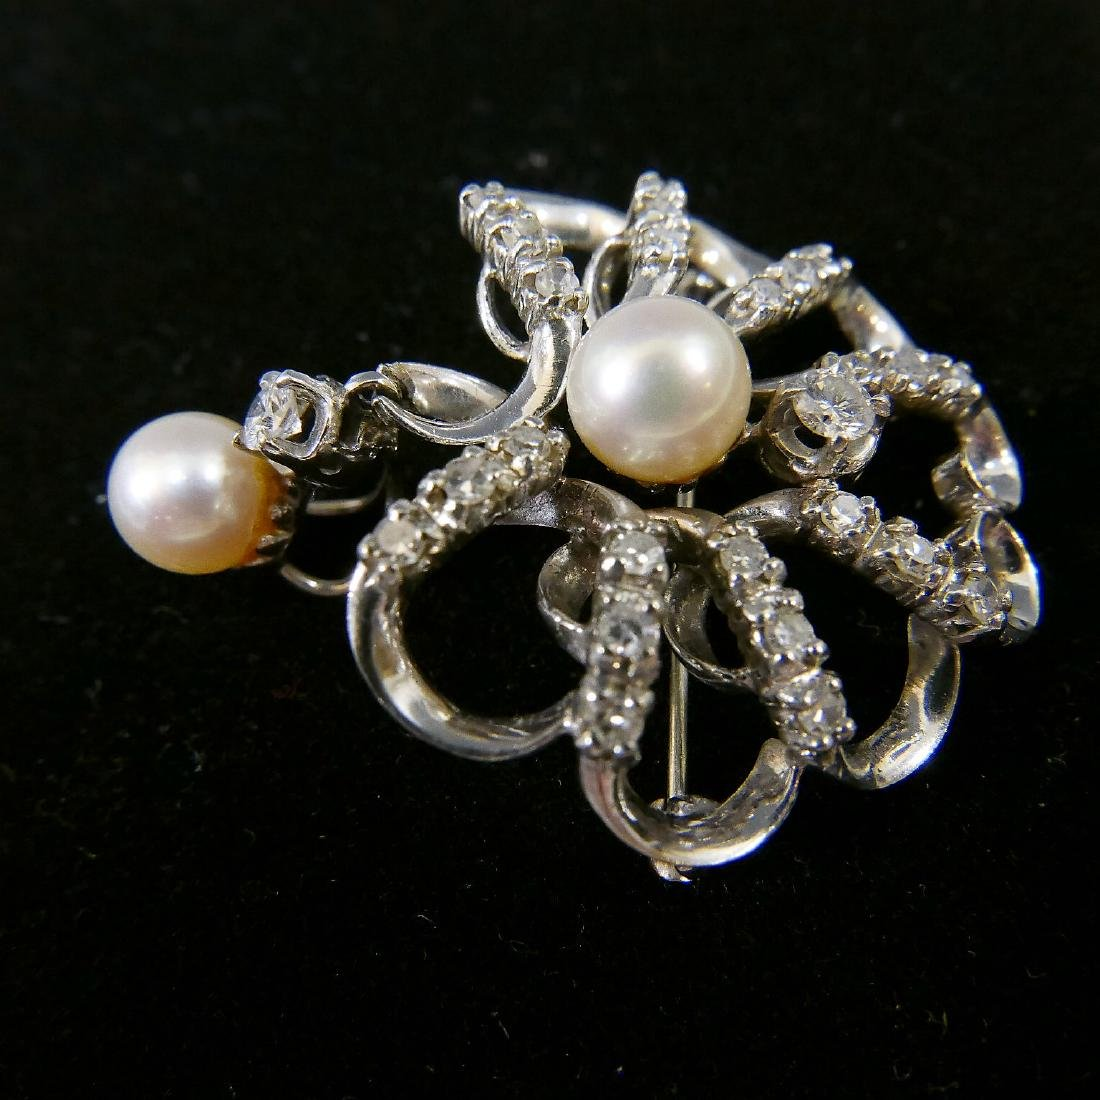 18K WHITE GOLD DIAMOND PEARL PENDANT OR PIN - 3